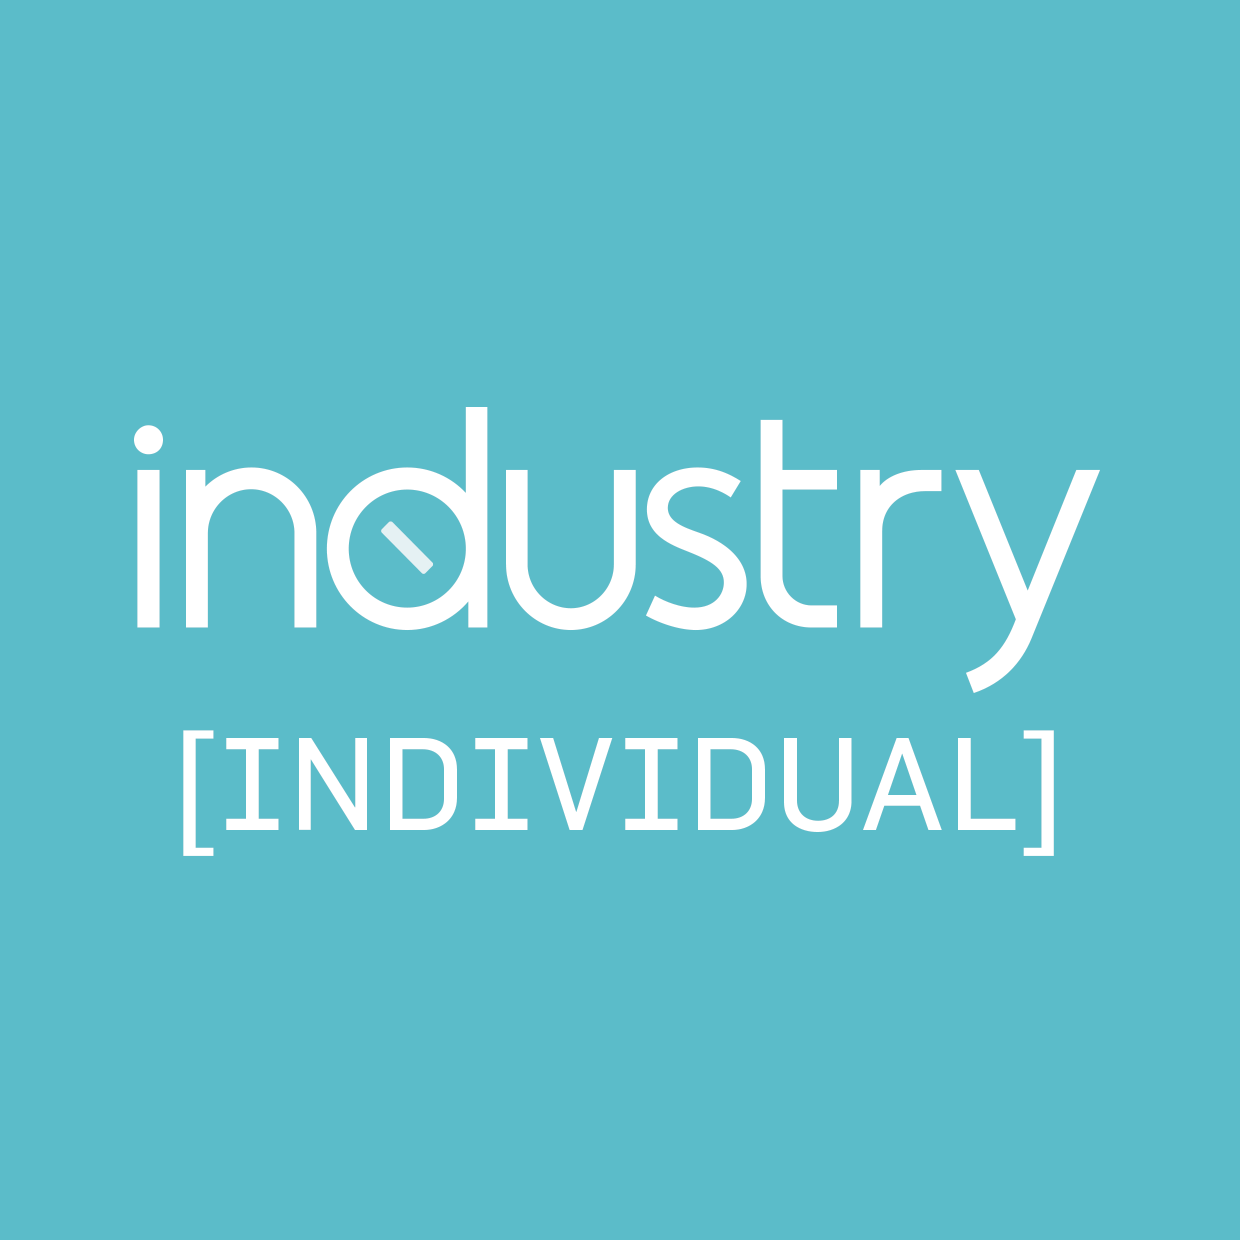 No-Coast-Icons_industry-individual.png